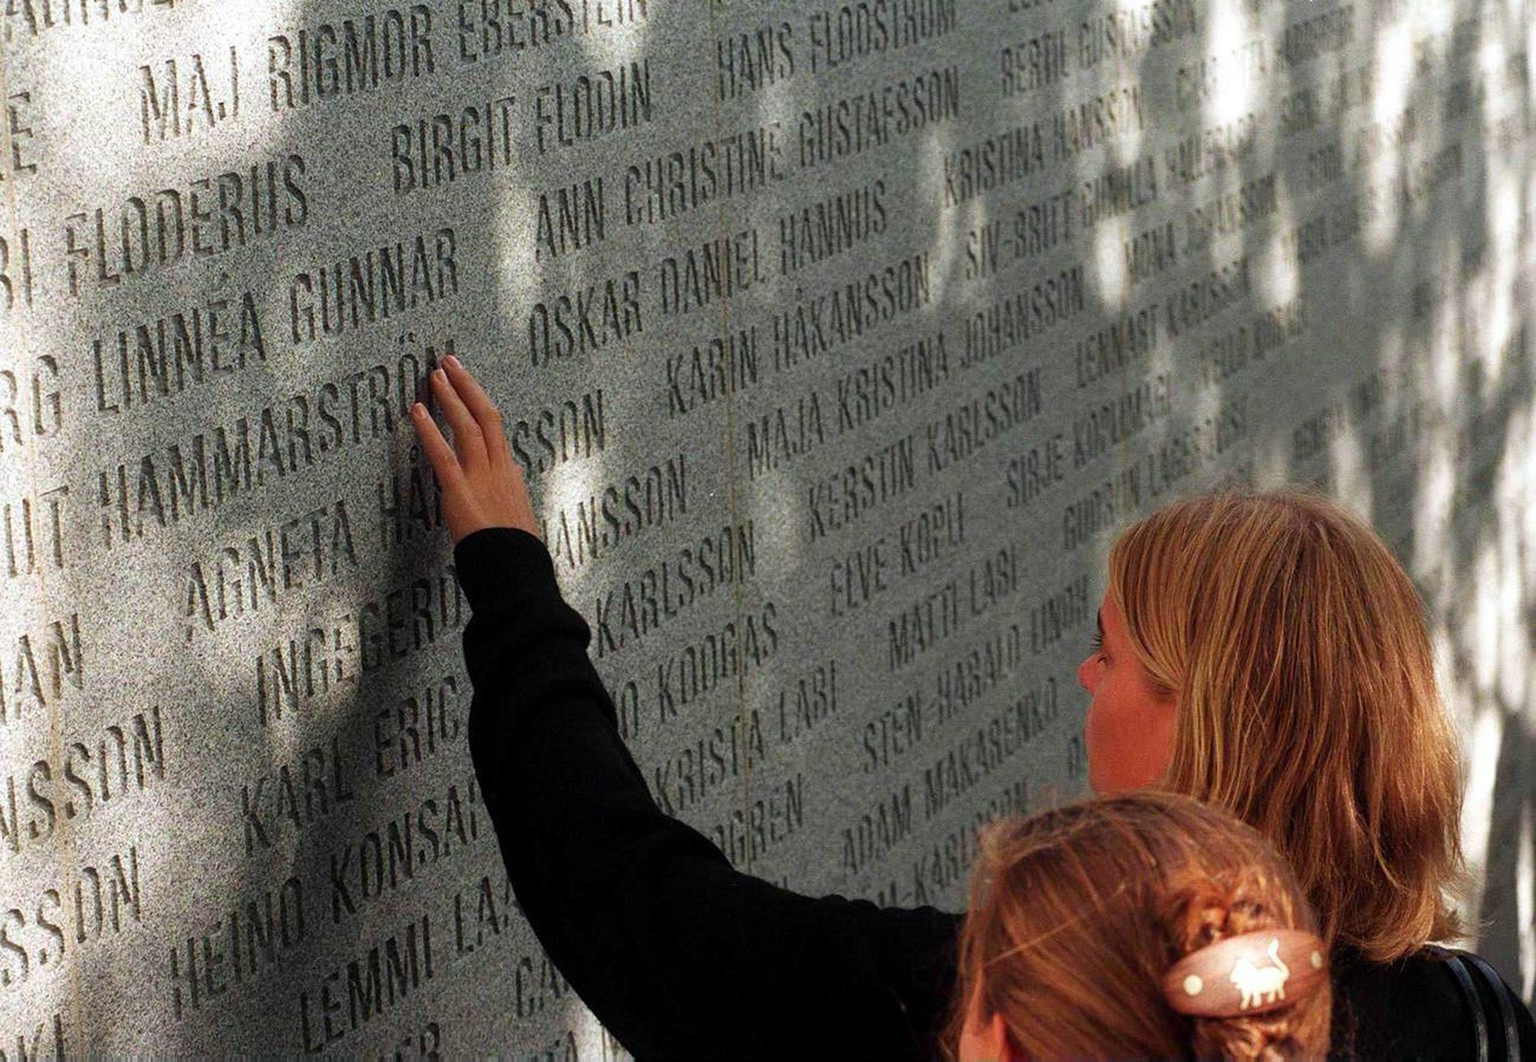 A unidentified relative of the 1994 Estonia ferry disaster victim reads a name on the monument wall downtown Stockholm 28 September 1997. A monument commemorating the 852 victims of the Estonia ferry disaster off Finish coast was today unveiled here, on the third anniversary of the accident. (KEYSTONE/EPA/PRESSENS/HENRIK MONTGOMERY)